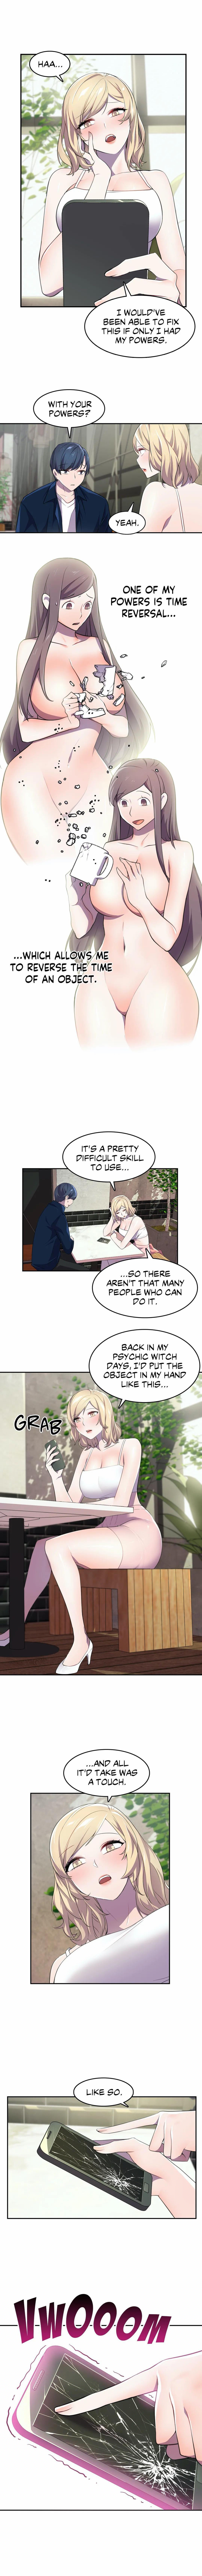 HERO MANAGER Ch. 1-16 44